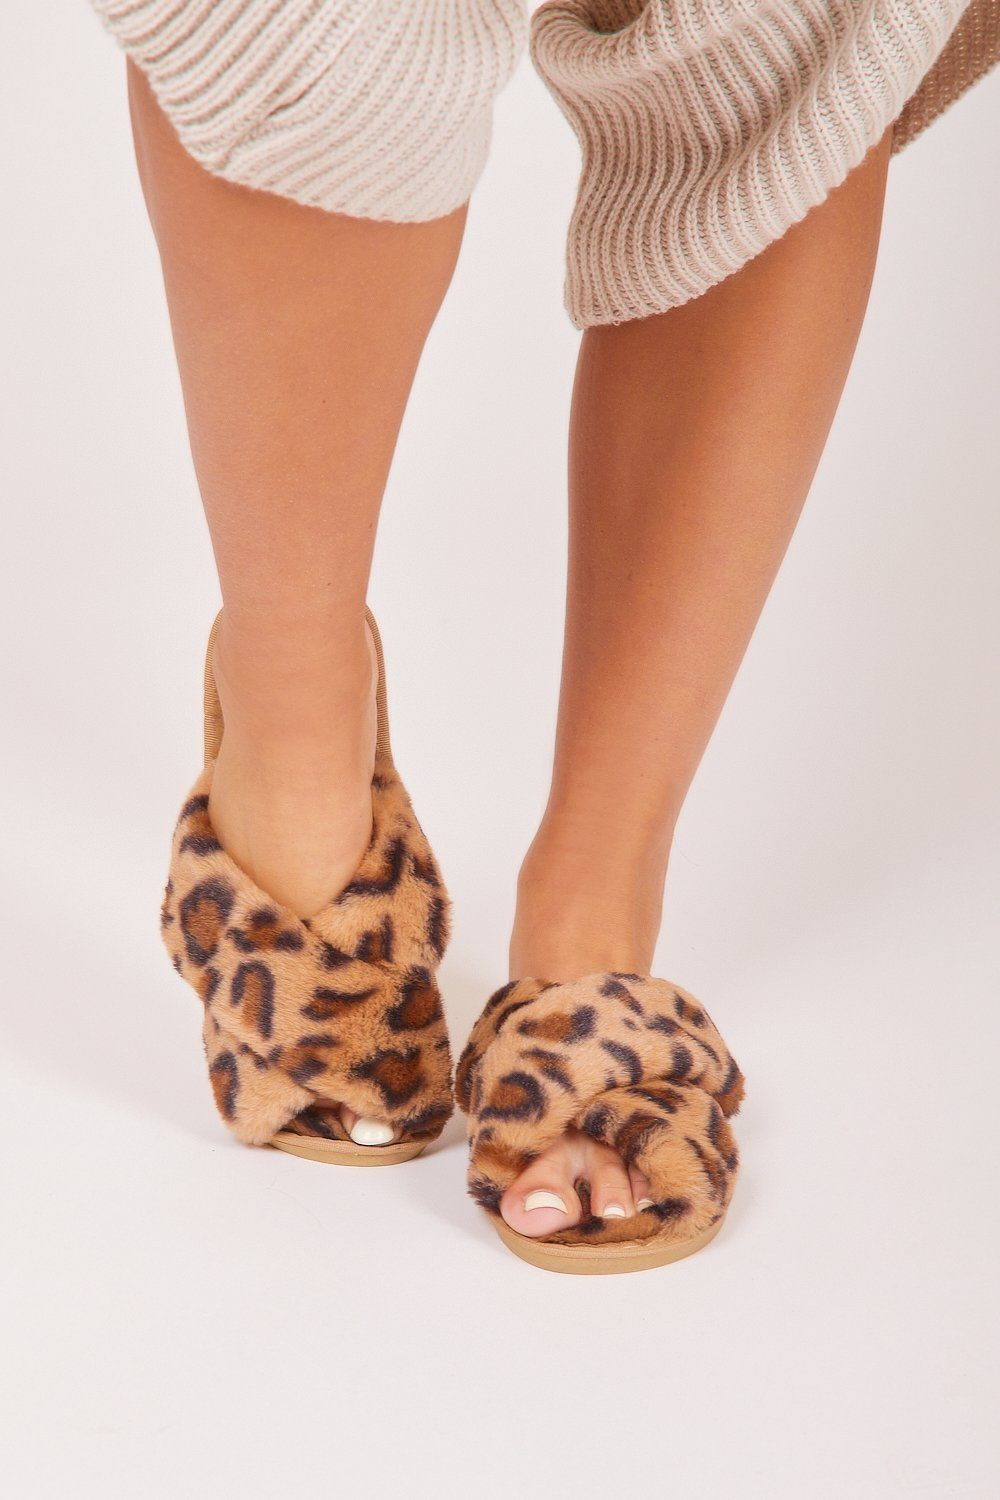 Leopard Print Fluffy Slippers - Charminique